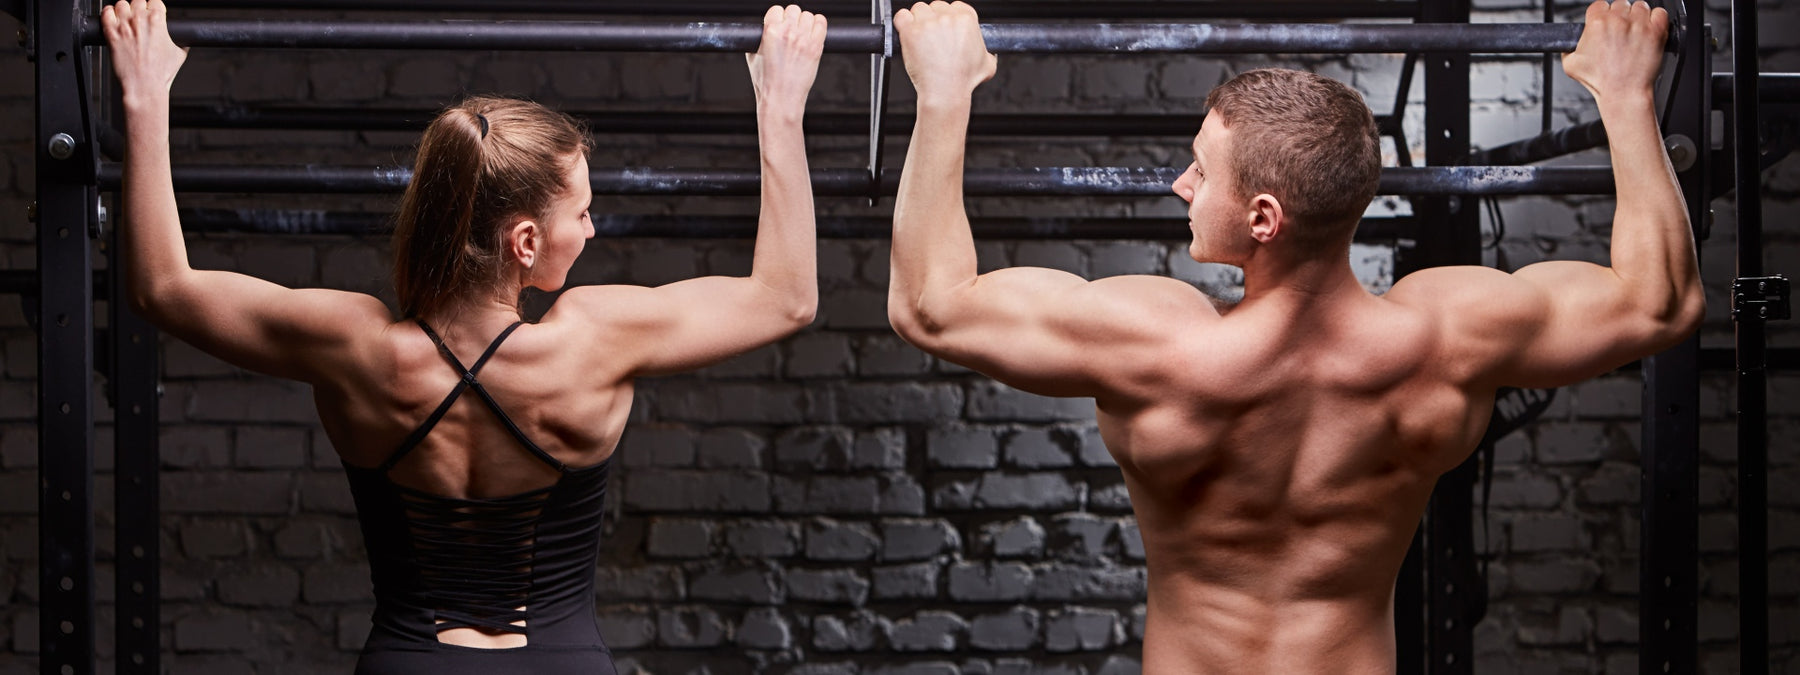 Build a Muscular Back - 3 Tips Plus Workouts